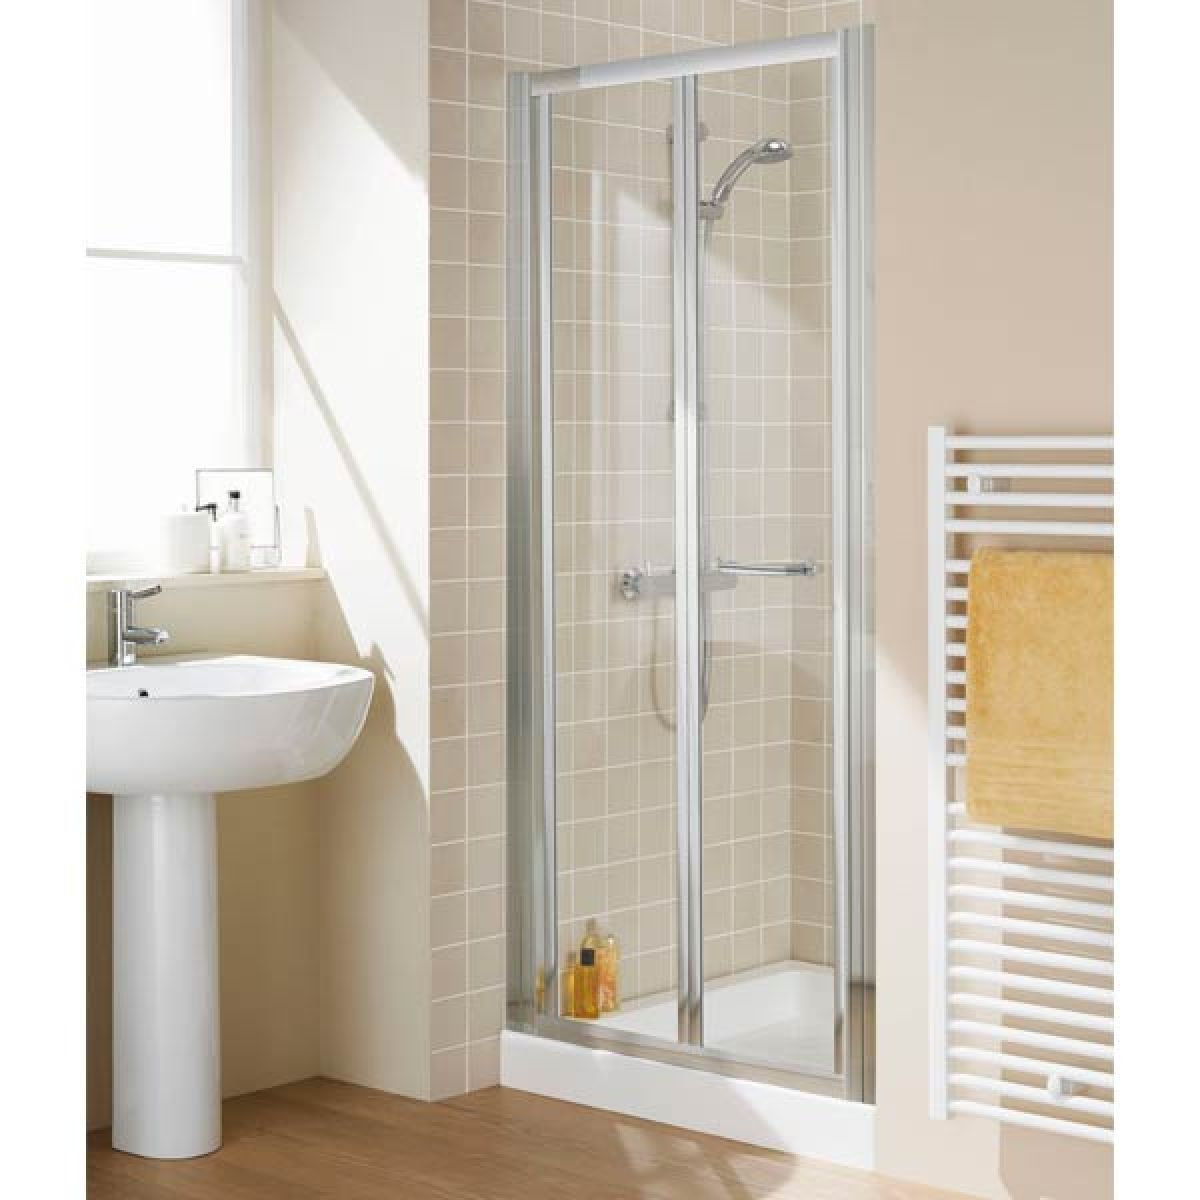 Lakes Silver Semi-Frameless Bi-Fold Shower Door with Optional Side Panel